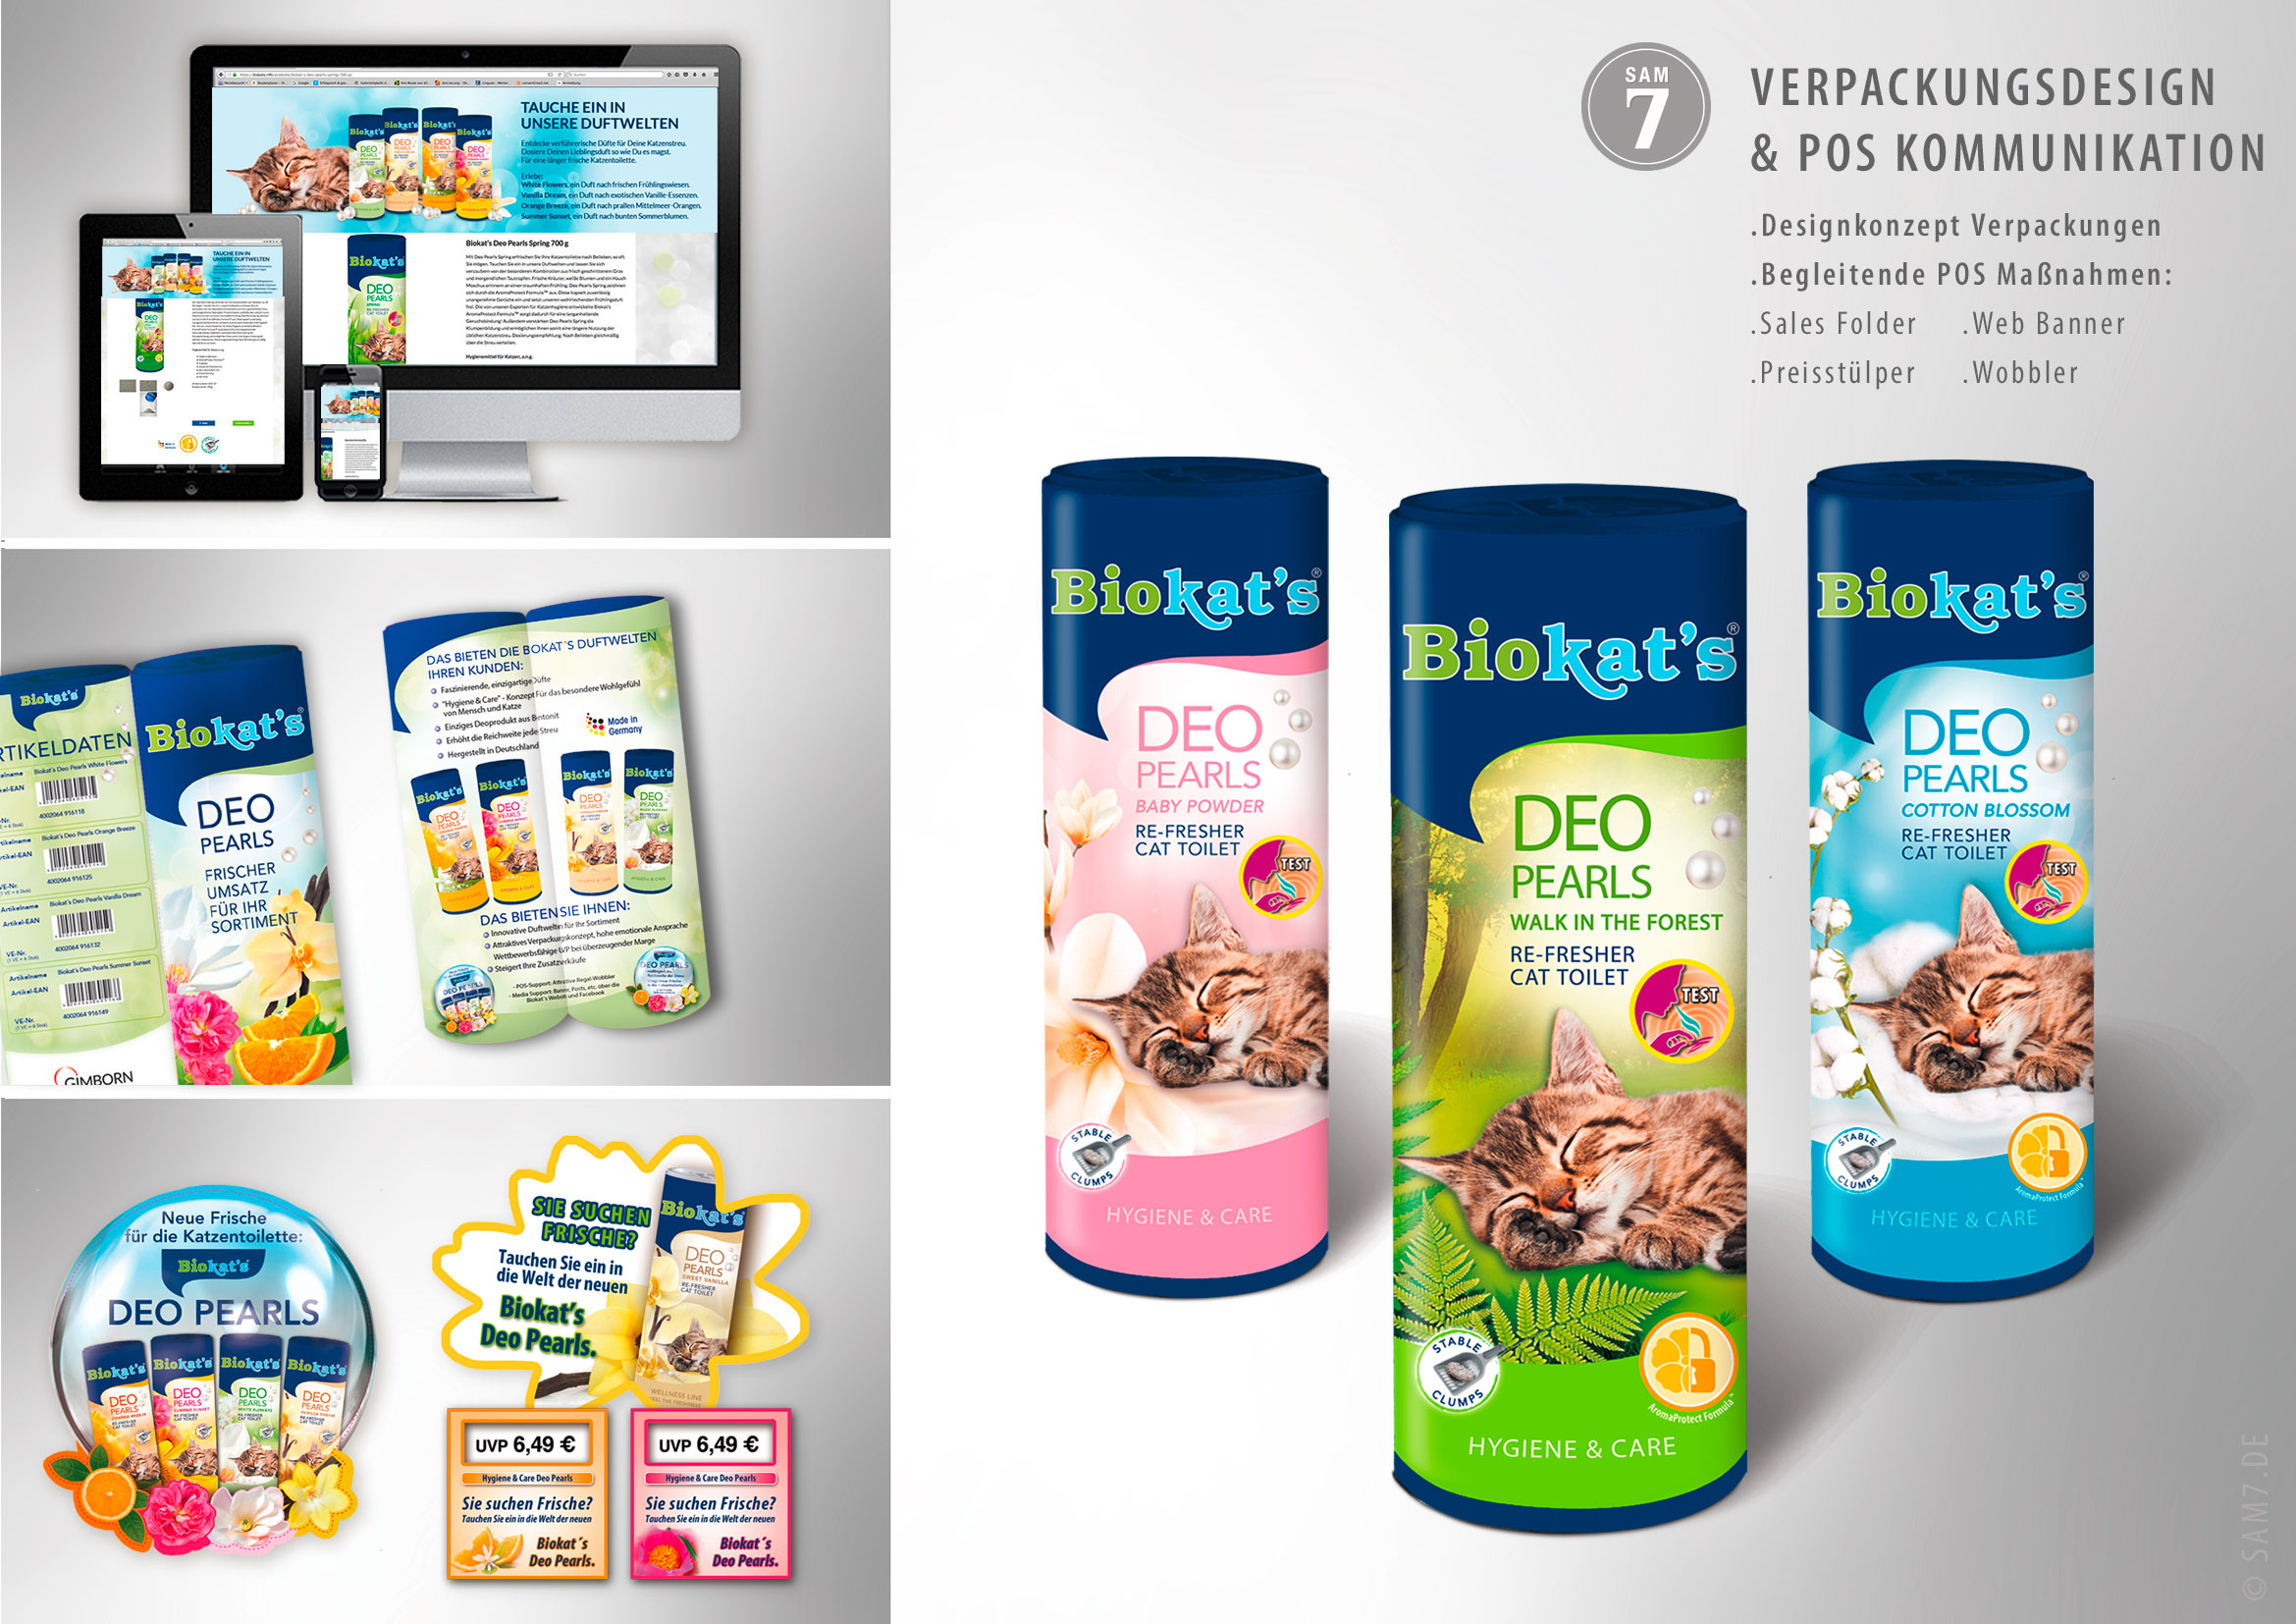 Biokats Brand Support. Packaging Design. Deo Pearls.